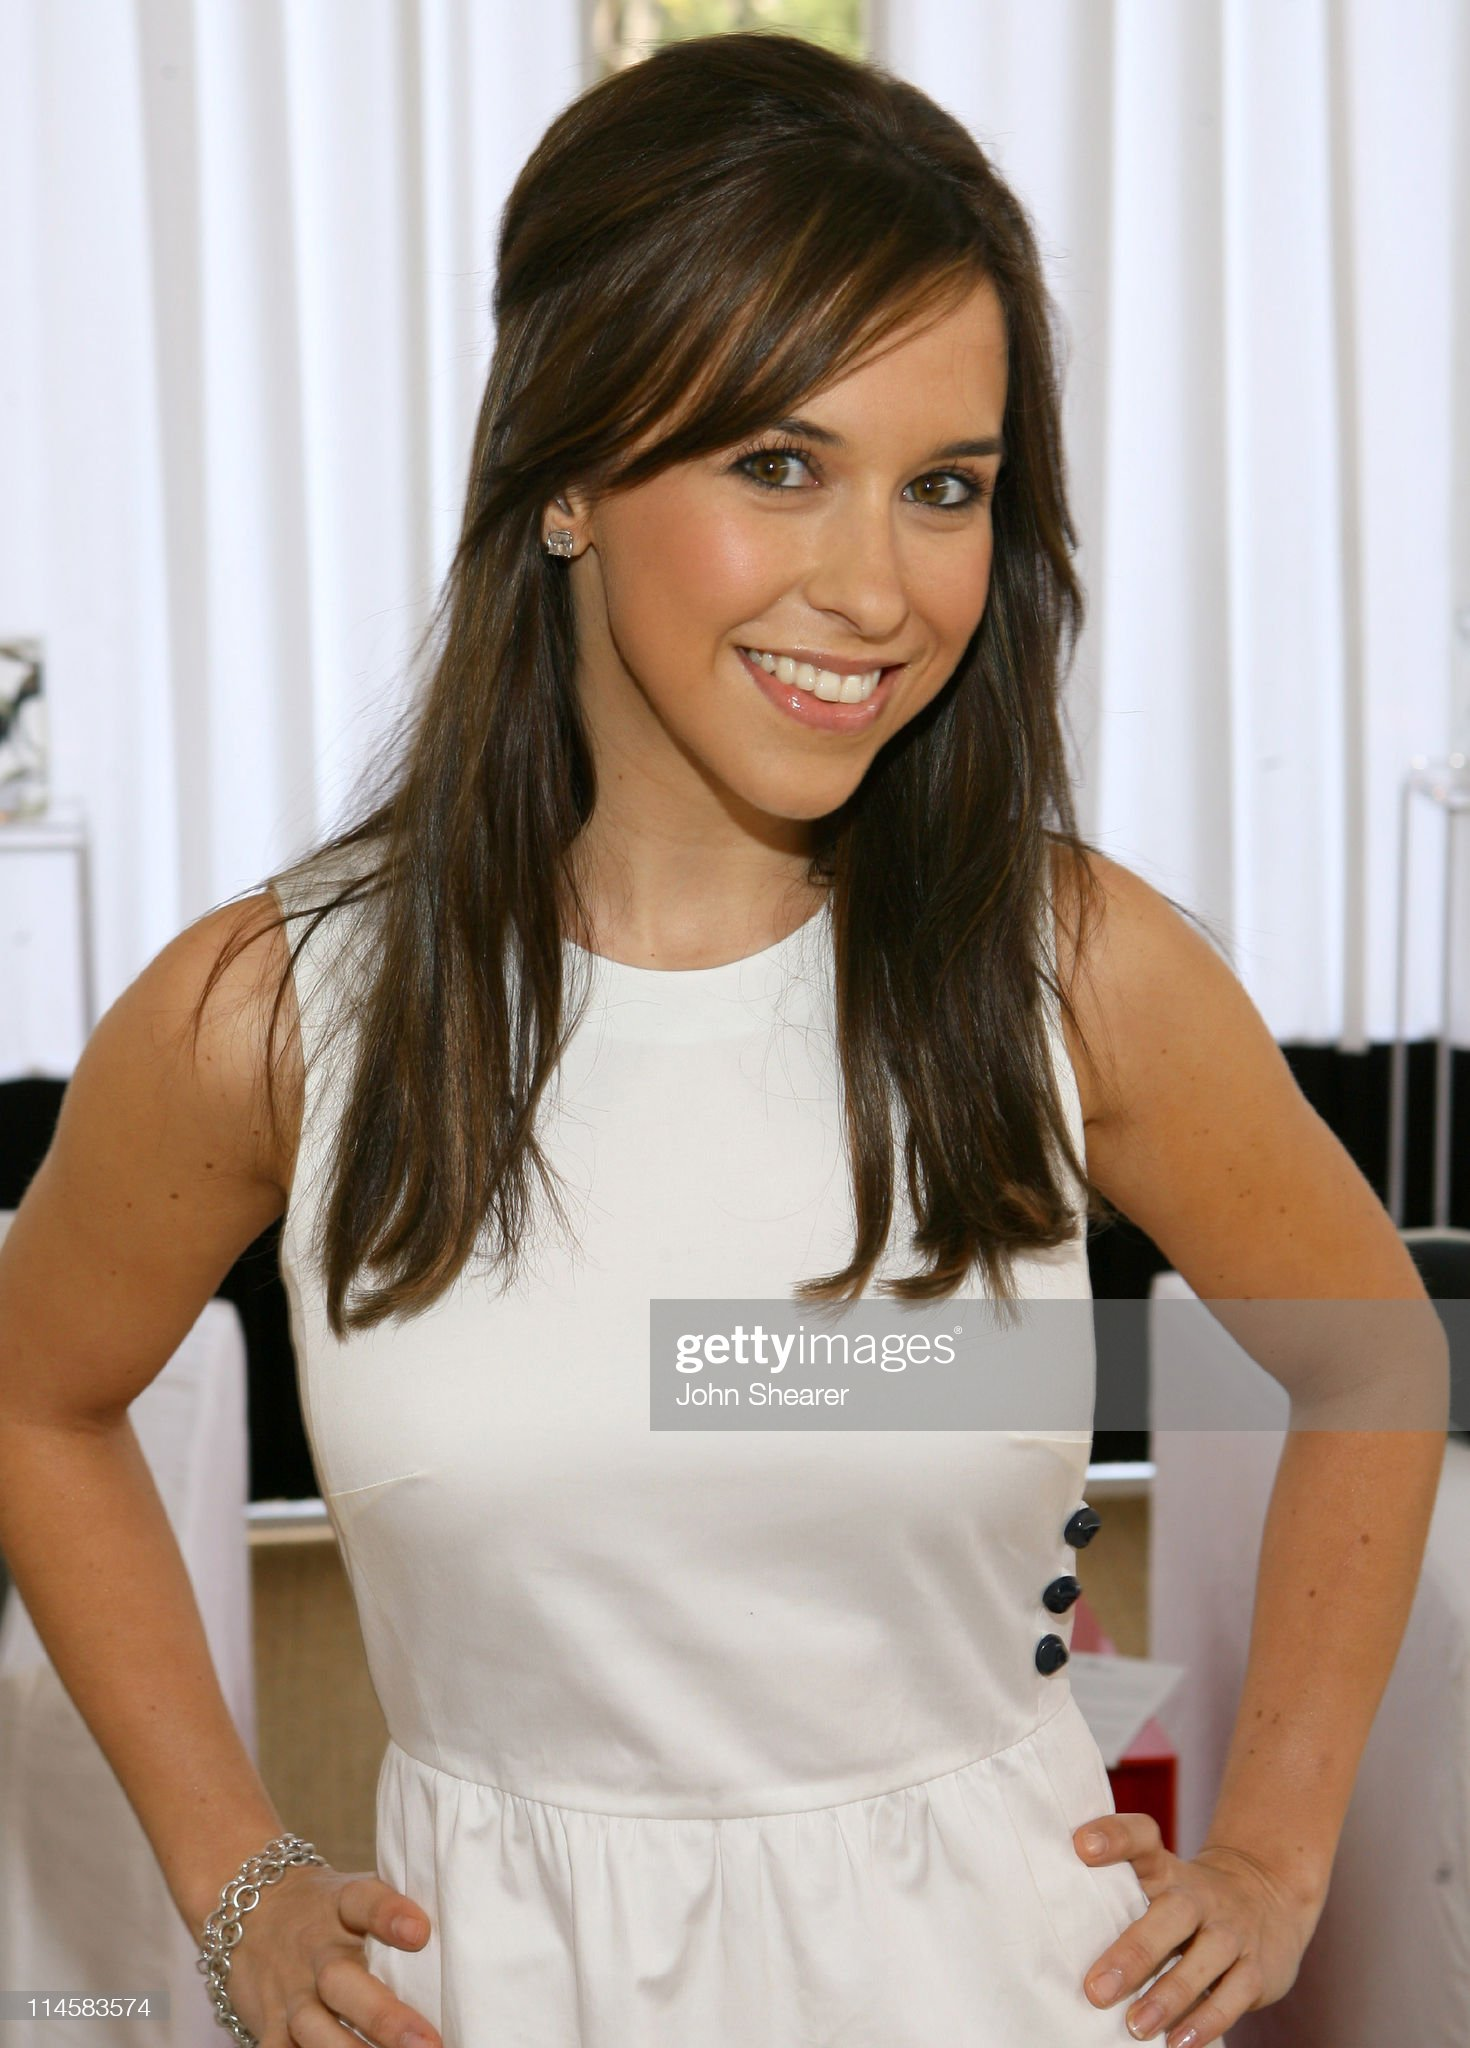 DEBATE sobre guapura de famosos y famosas - Página 3 Lacey-chabert-during-coach-fragrance-launch-to-benefit-ebmrf-in-los-picture-id114583574?s=2048x2048